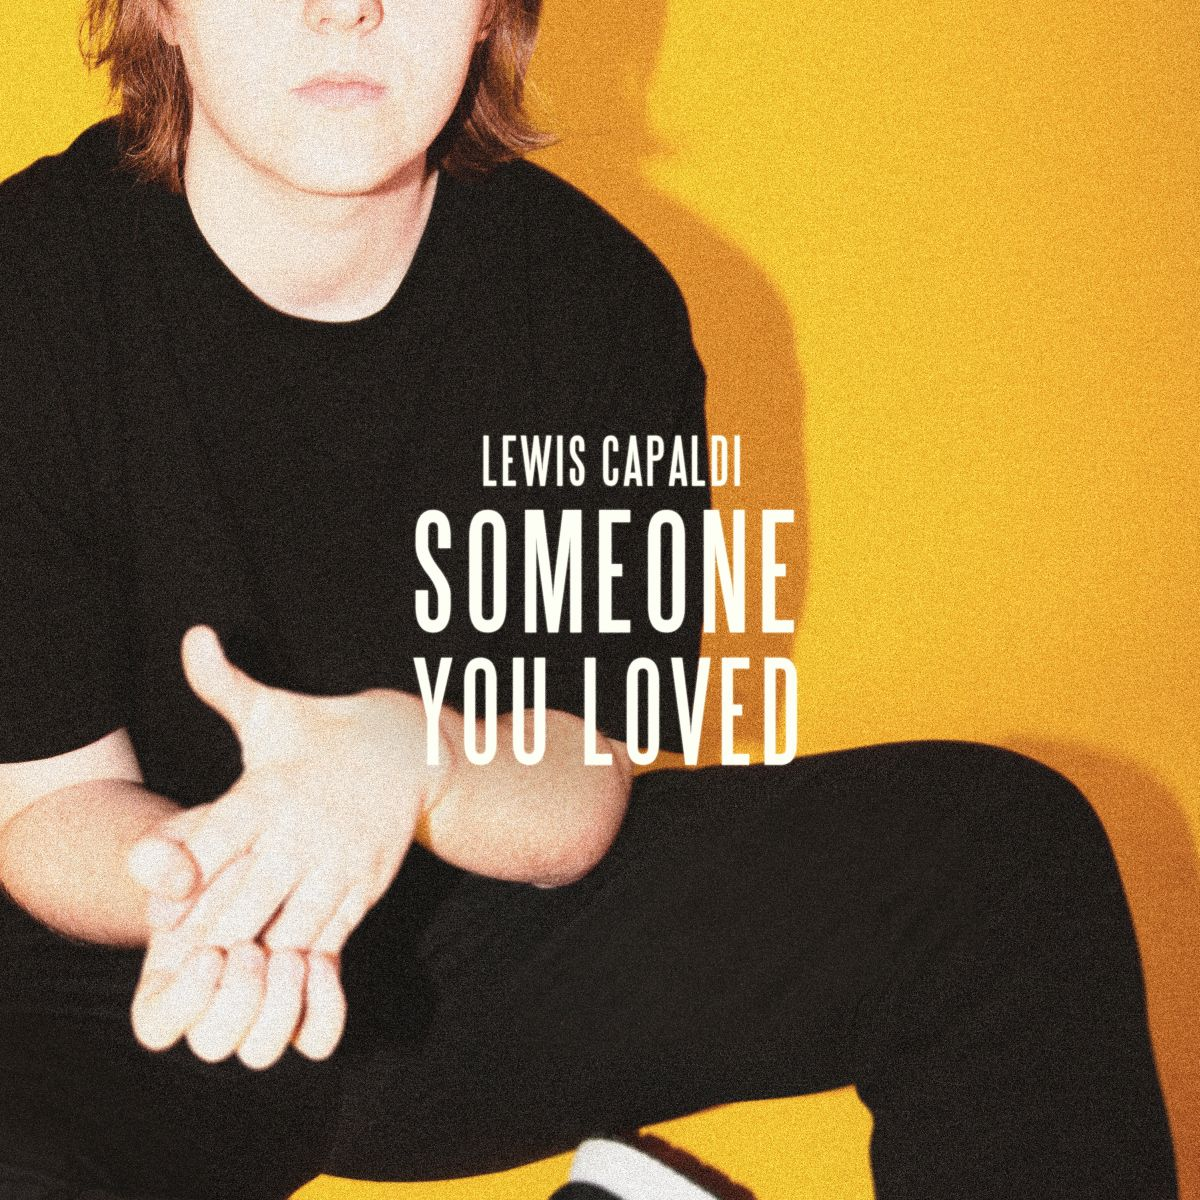 Cover: Someone you loved, Lewis Capaldi